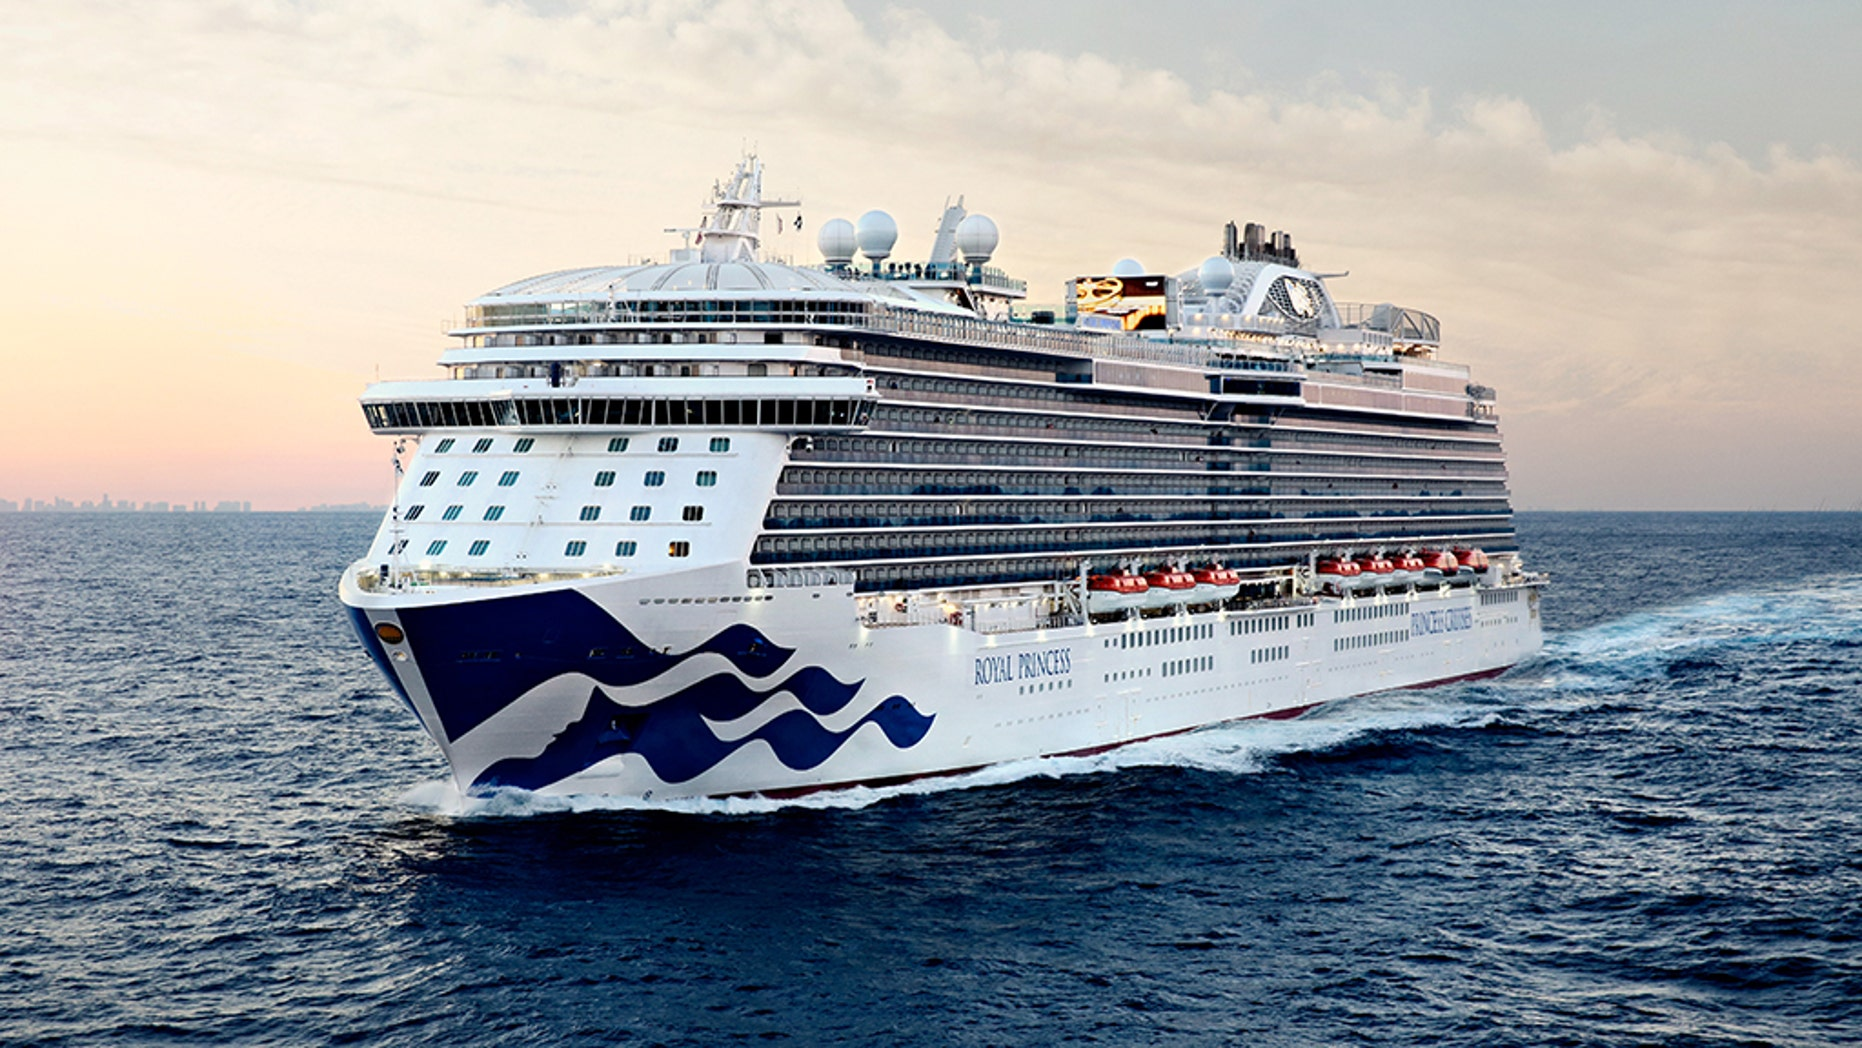 Police Launch Murder Investigation into Woman's Fatal Plunge Off Cruise Ship